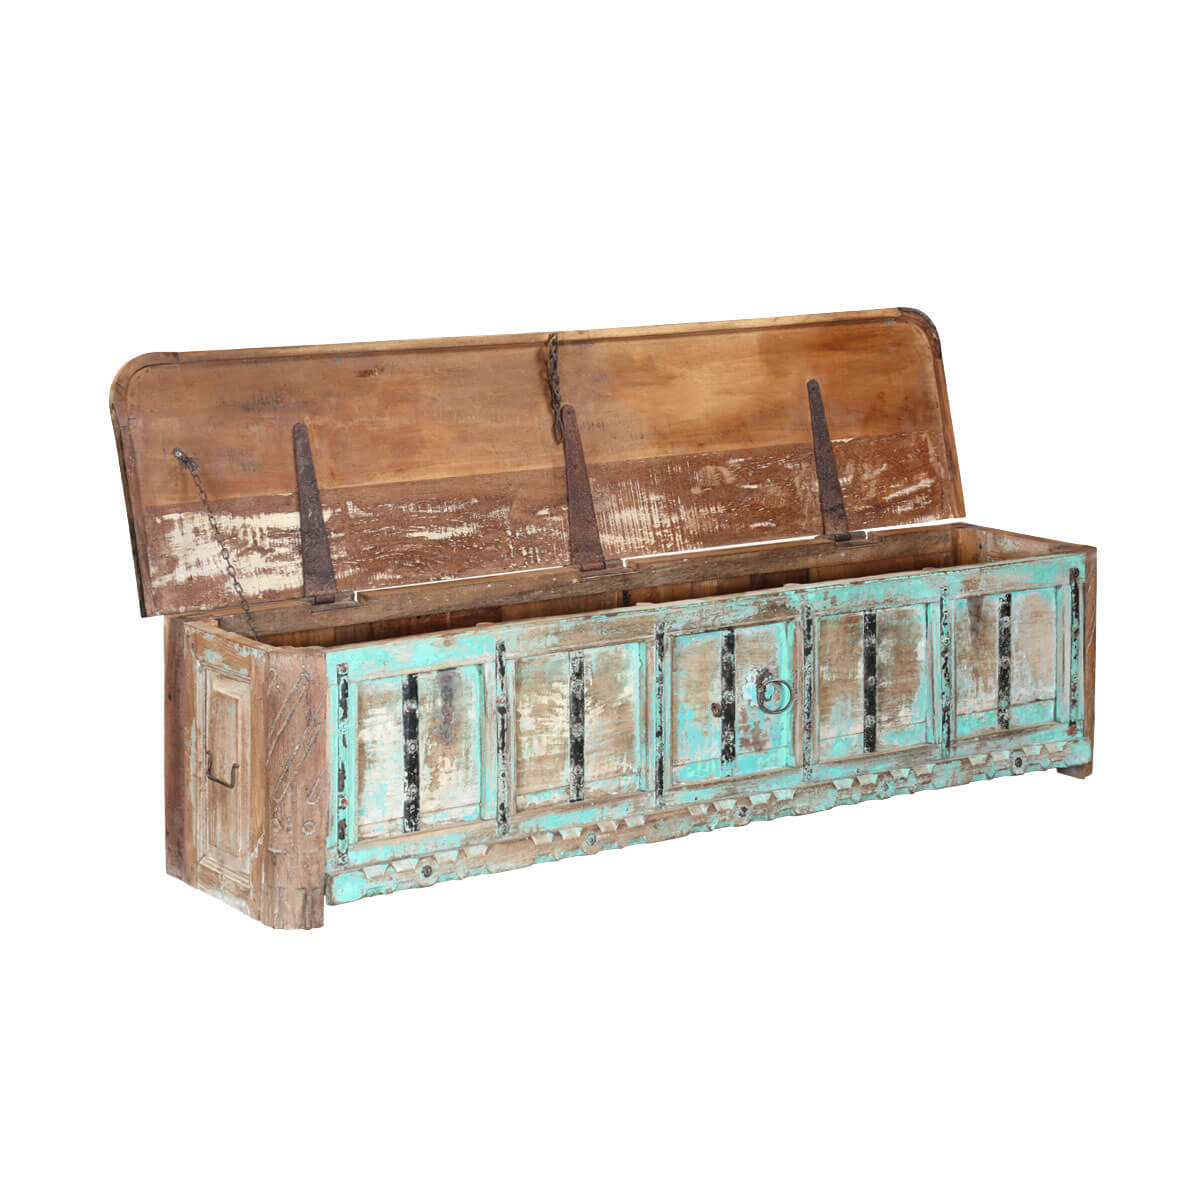 Turquoise reclaimed wood 72 coffee table chest rustic turquoise reclaimed wood 72 coffee table chest geotapseo Choice Image